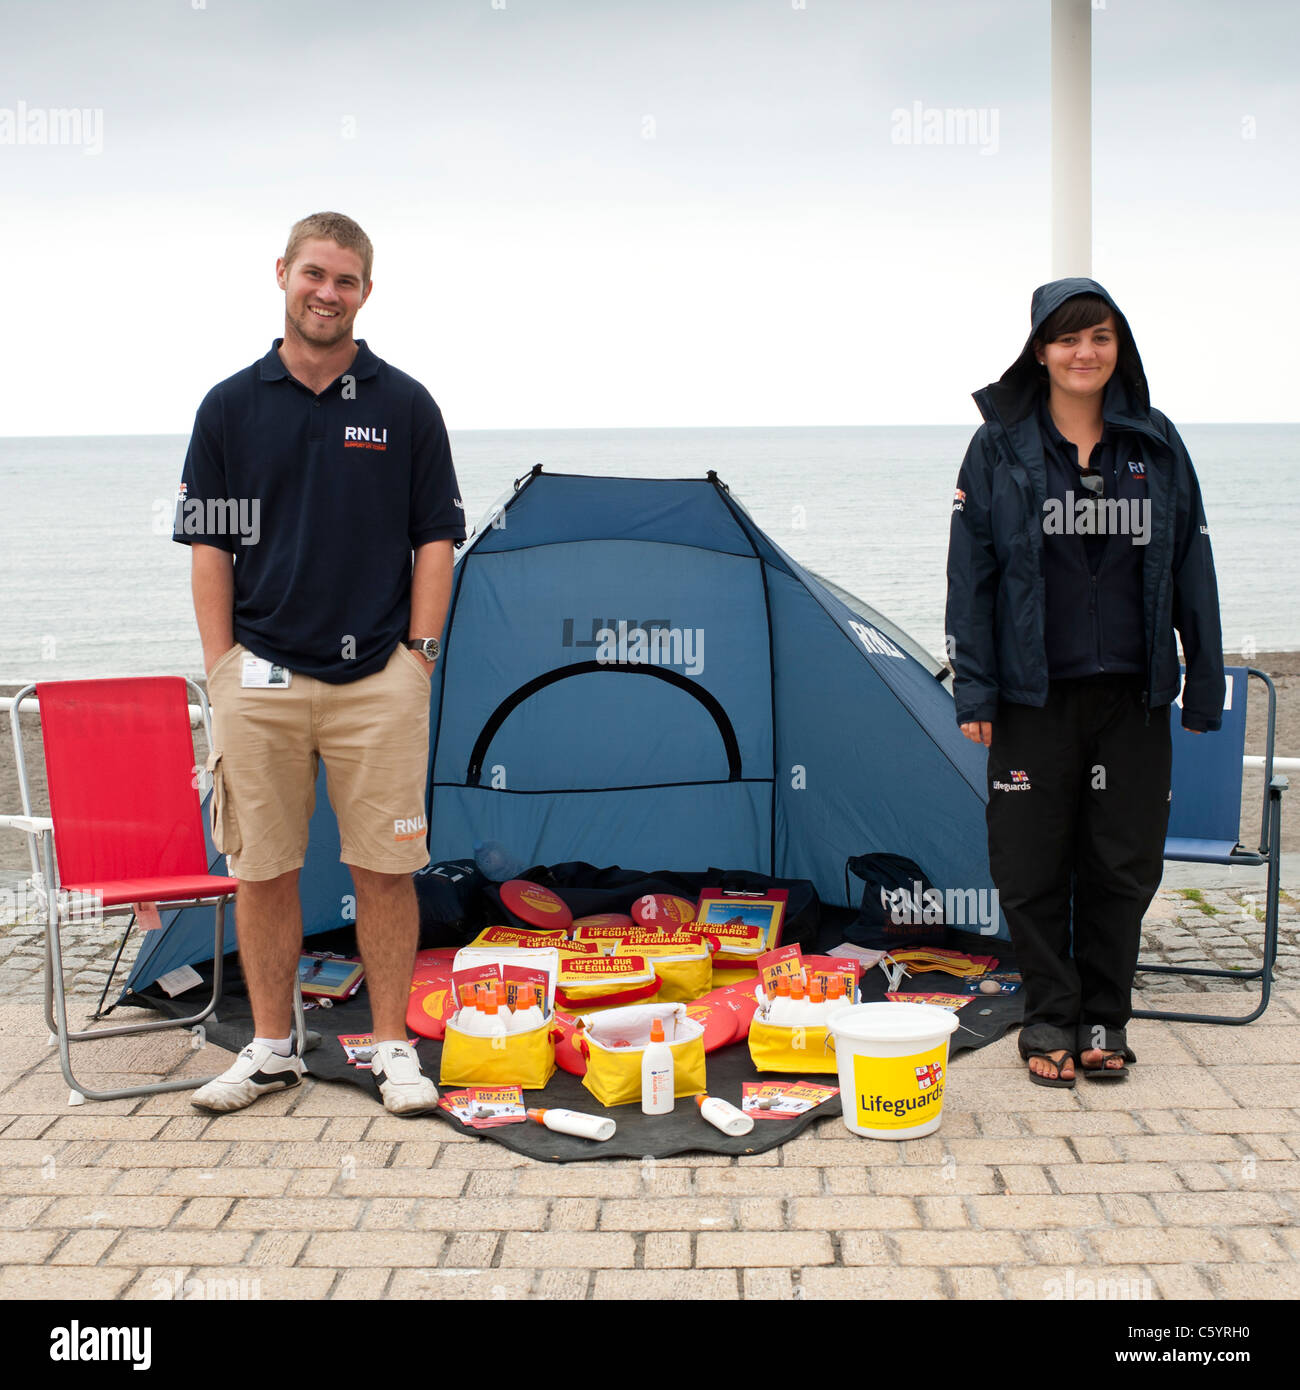 two RNLI workers selling branded items to raise money for the charity, Aberystwyth Wales UK - Stock Image